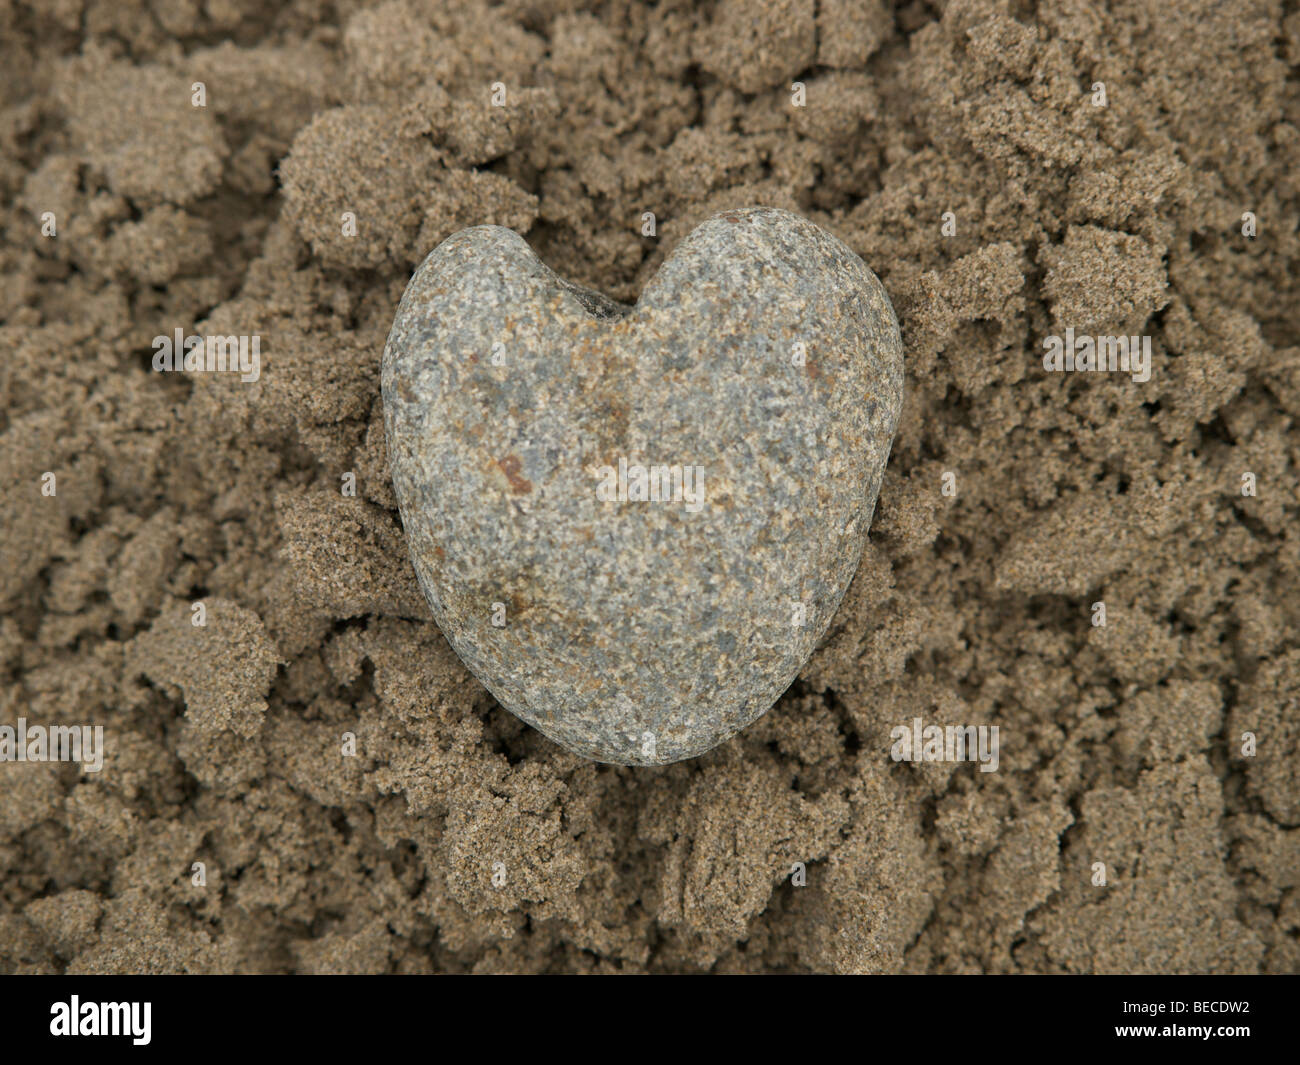 Heart of stone lying in wet sand - Stock Image